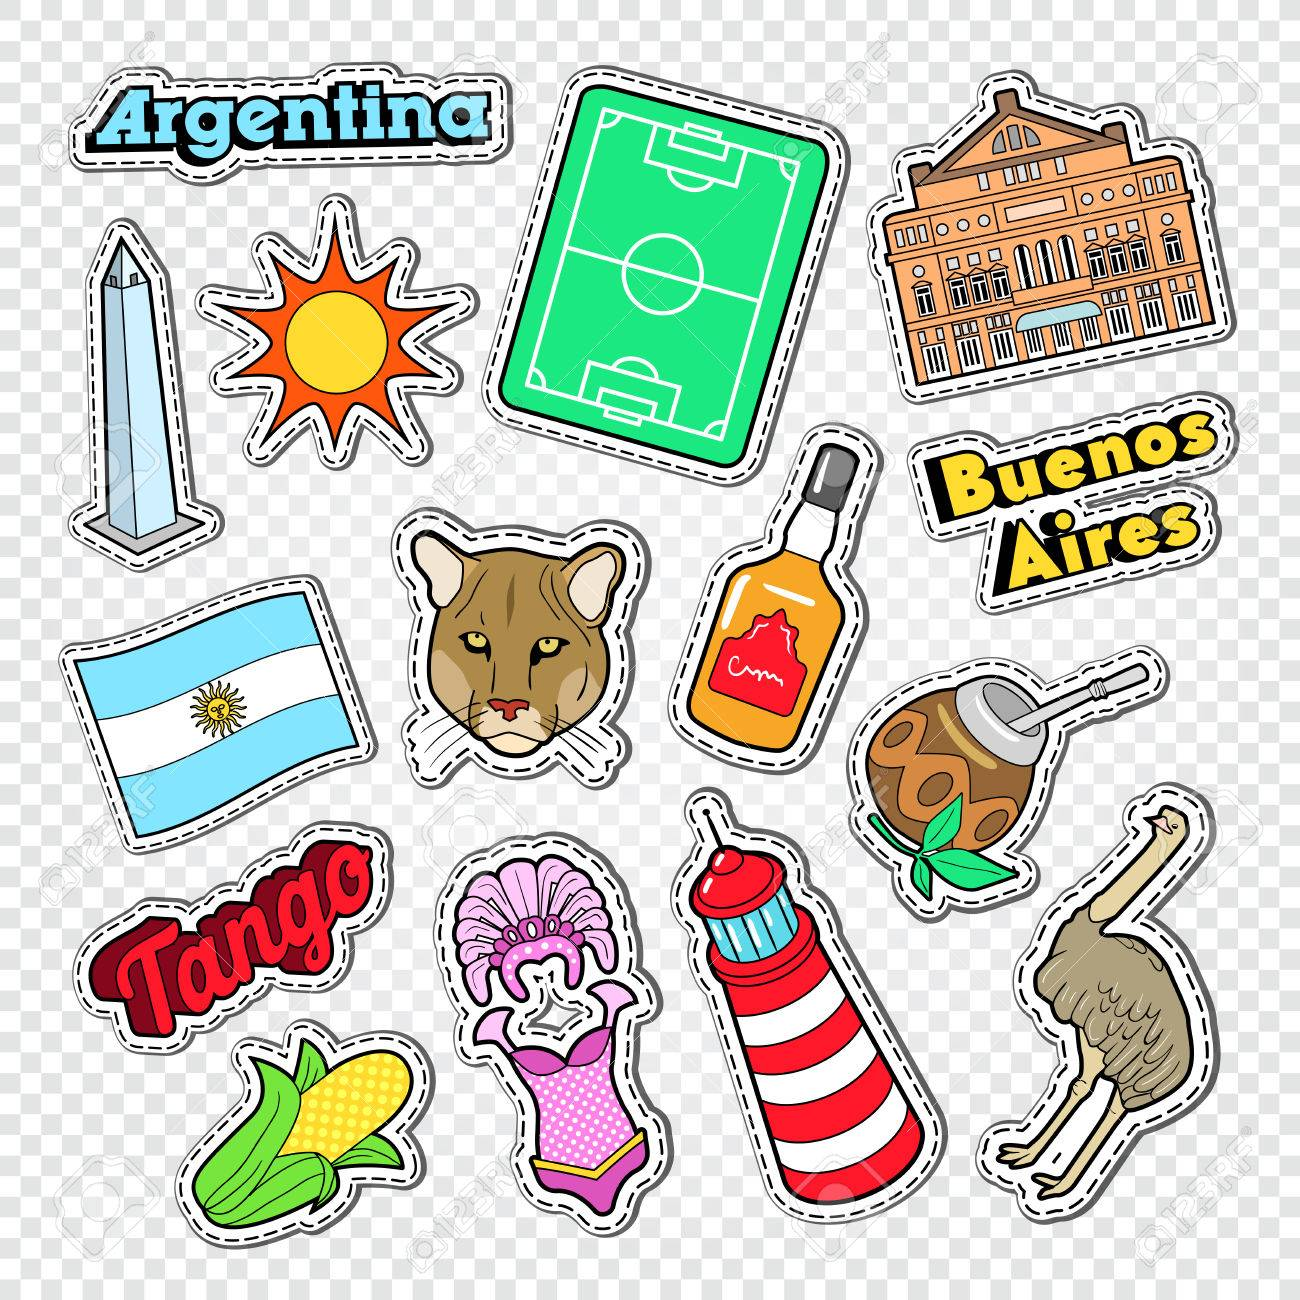 Travel to argentina doodle argentinian stickers badges and patches with animals and architecture